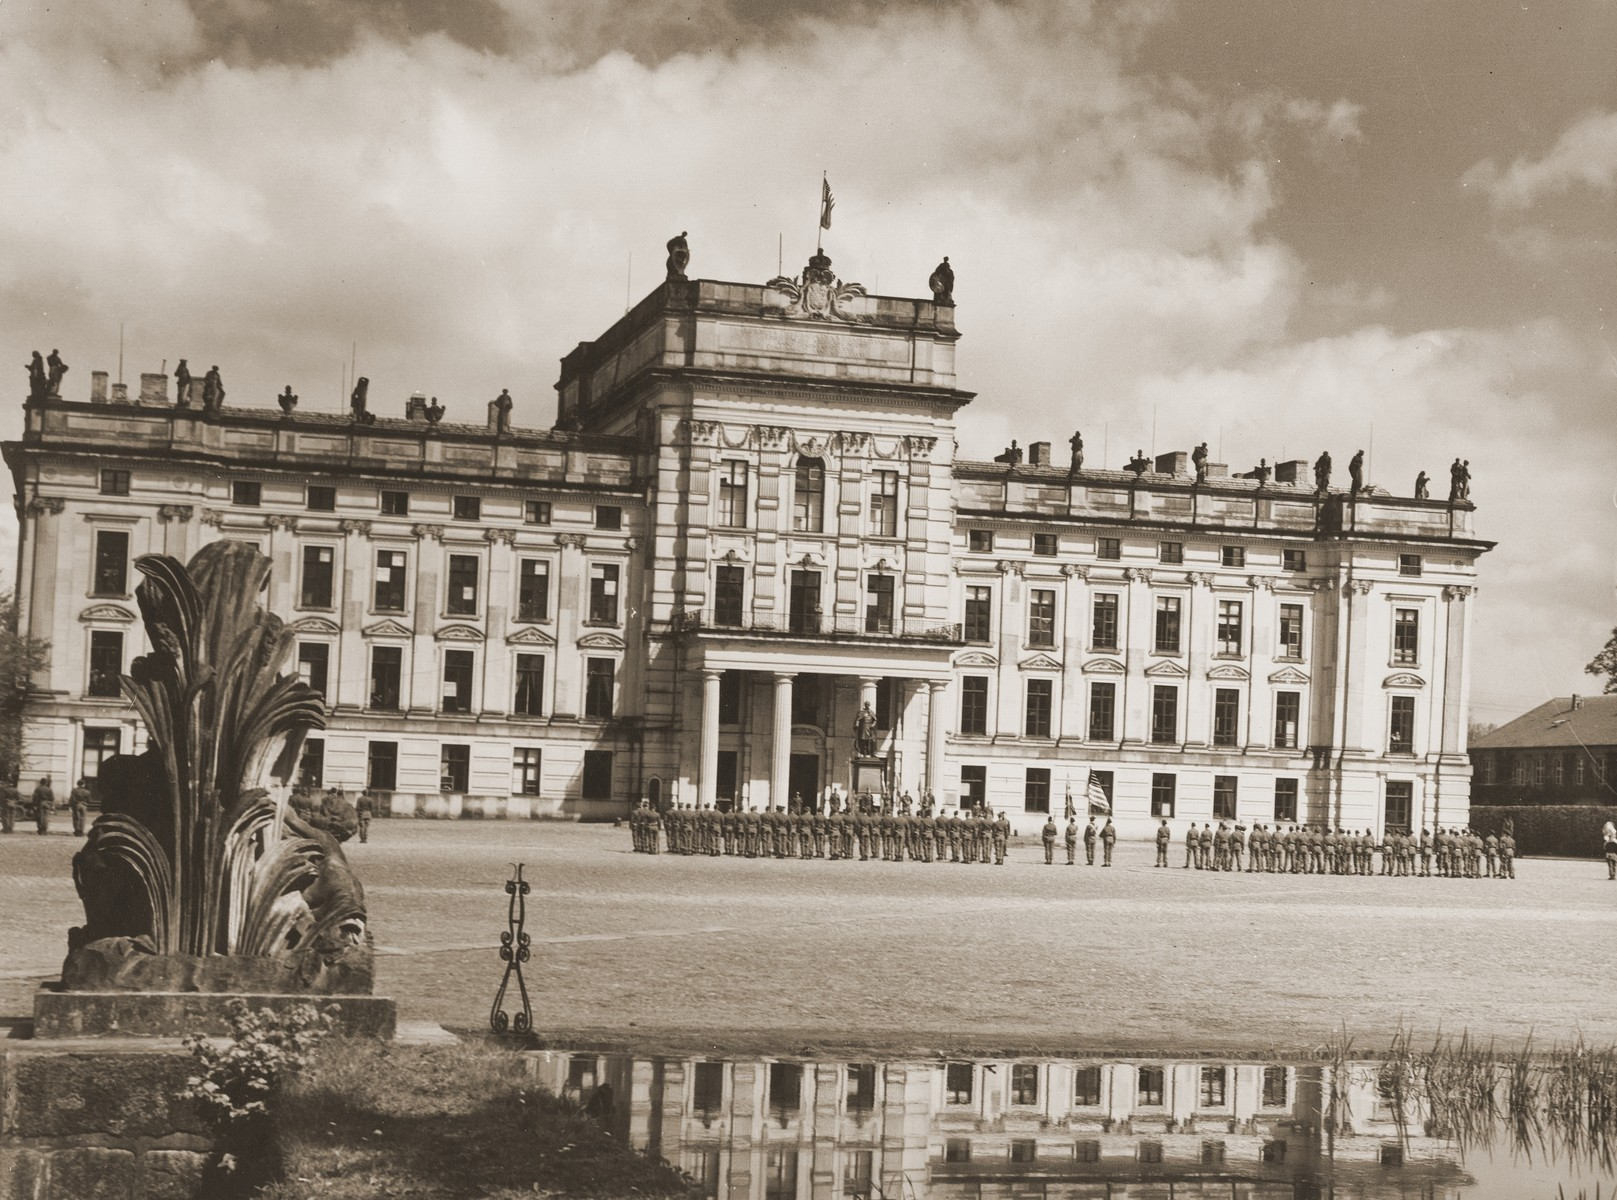 View of the palace and grounds of the Archduke of Mecklenburg, where the bodies of 200 prisoners from the nearby concentration camp of Woebbelin were buried by German civilians from Ludwigslust.  A sub-camp of Neuengamme, Woebbelin was captured by British and American troops on 4 May 1945.  Upon entering the camp, the liberators discovered nearly 4,000 prisoners, one-quarter of whom were already dead.  Outraged by what they found, the ranking Allied commanders in the area forced civilians from the nearby towns of Schwerin, Hagenow, and Ludwigslust to first see Woebbelin and then bury the bodies of prisoners in their towns.  The largest number of bodies, ca. 200, was buried in Ludwigslust on the palace grounds of the Archduke of Mecklenburg.  A slightly smaller number was buried in the garden of the leading Nazi official in Hagenow and 80 bodies were interred in Schwerin.  Every fourth grave was marked at each site with a Star of David in honor of the unidentified Jewish dead.